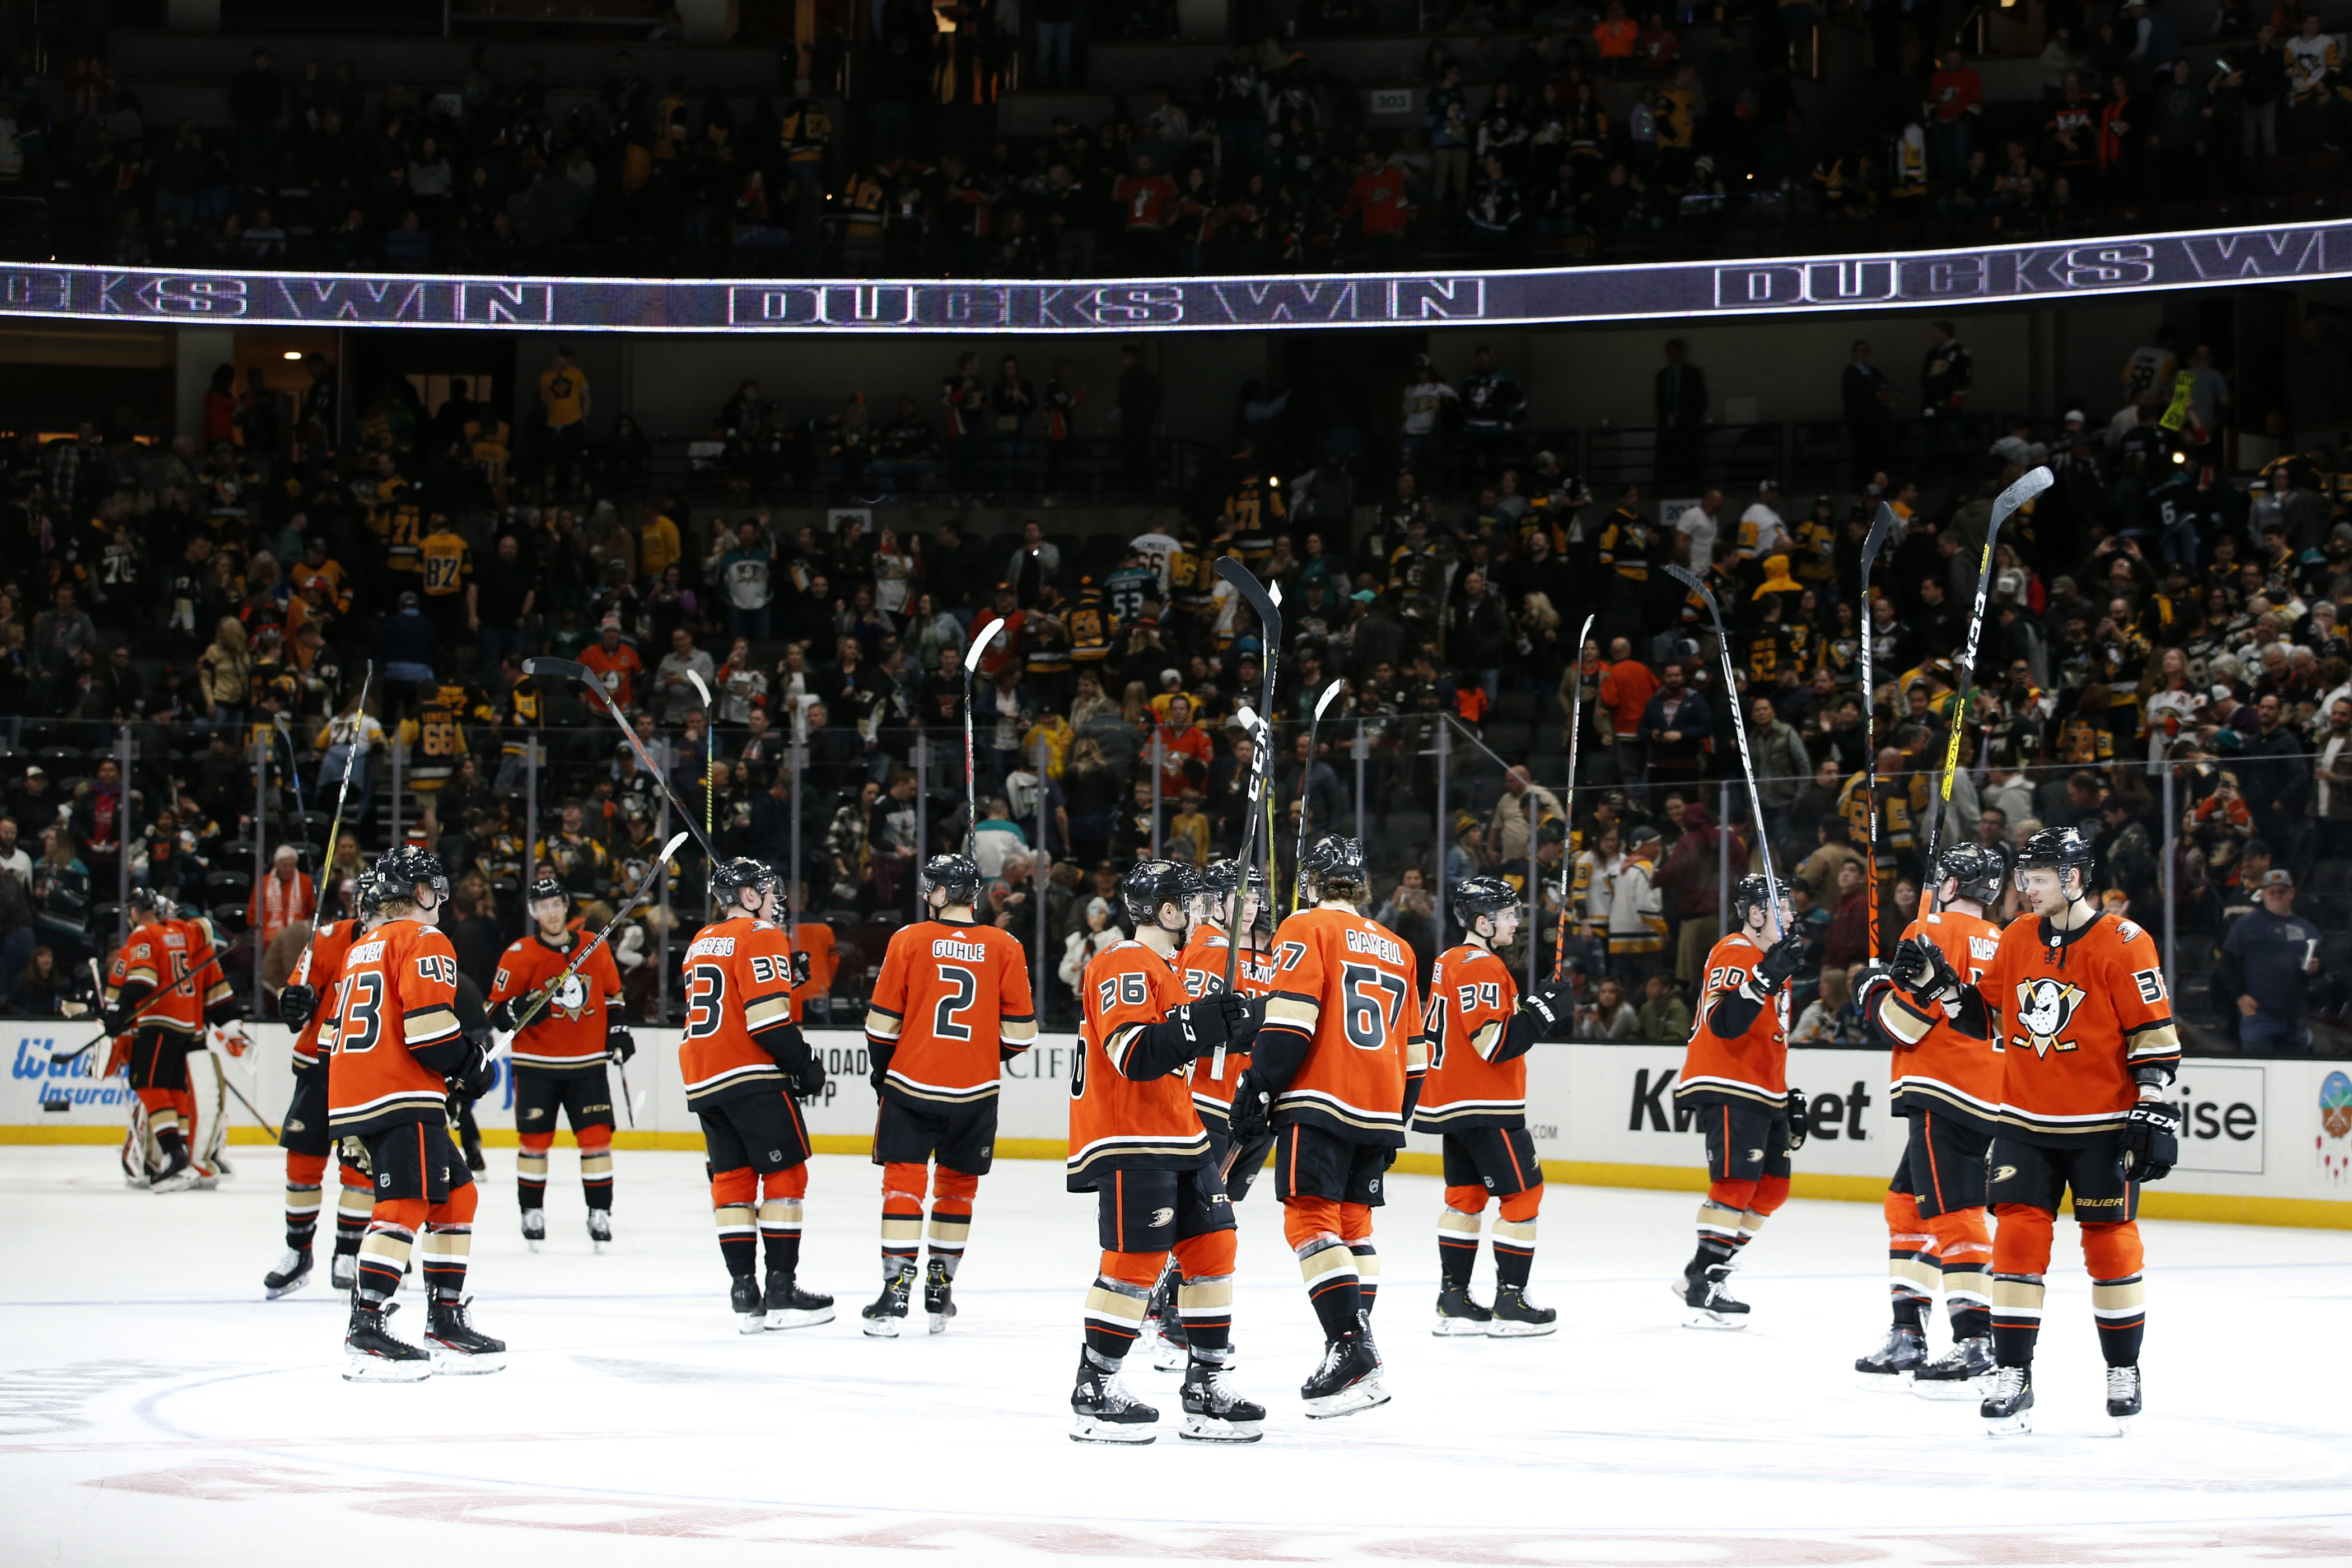 The Anaheim Ducks wave to the crowd in celebration of their 3-2 win over the Pittsburgh Penguins at Honda Center on February 28, 2020 in Anaheim, California.